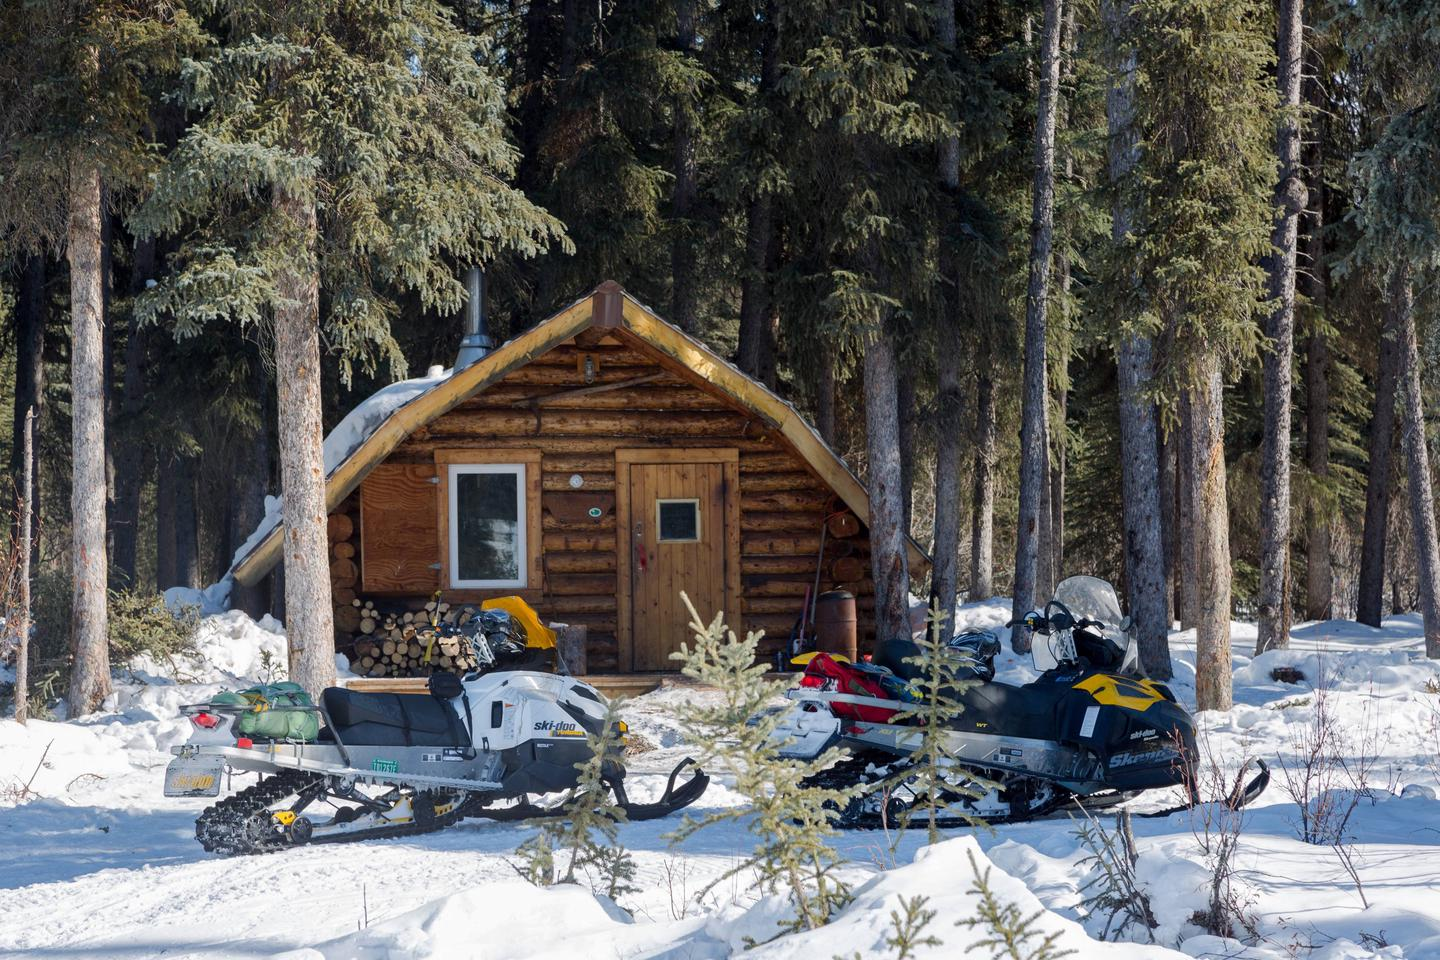 Two snowmobiles are parked in front of a log cabin.Richard's Cabin